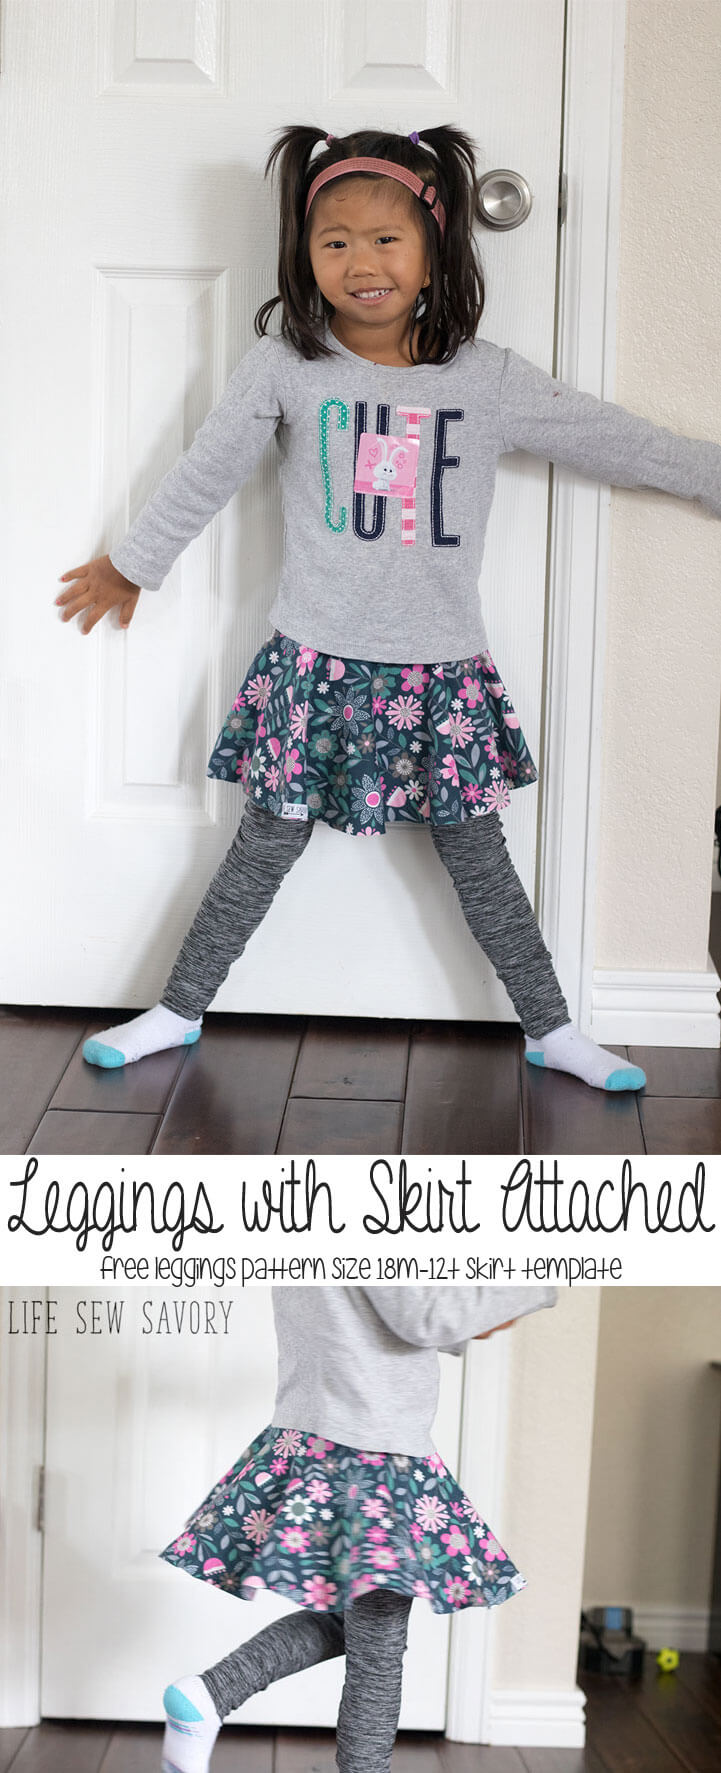 free leggings with skirt attached pattern and tutorial from Life Sew Savory